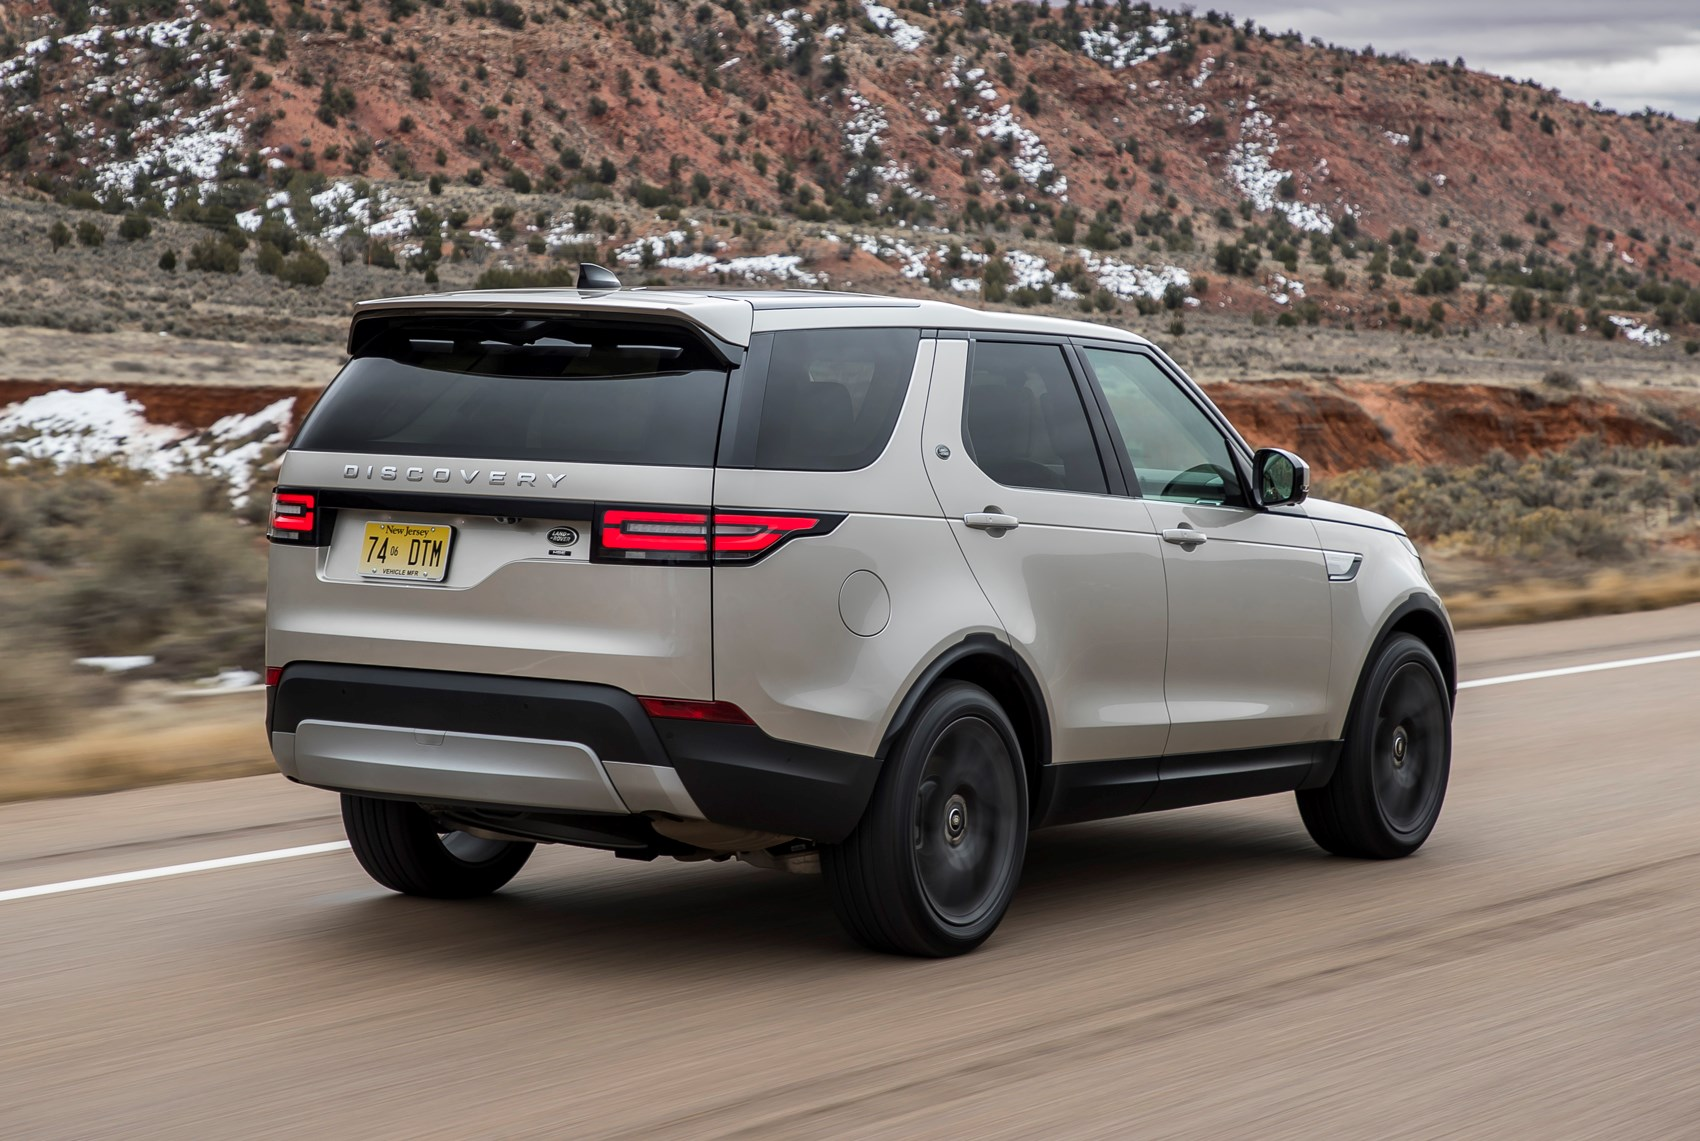 land rover discovery review parkers range rover discovery sport preis range rover discovery technische daten